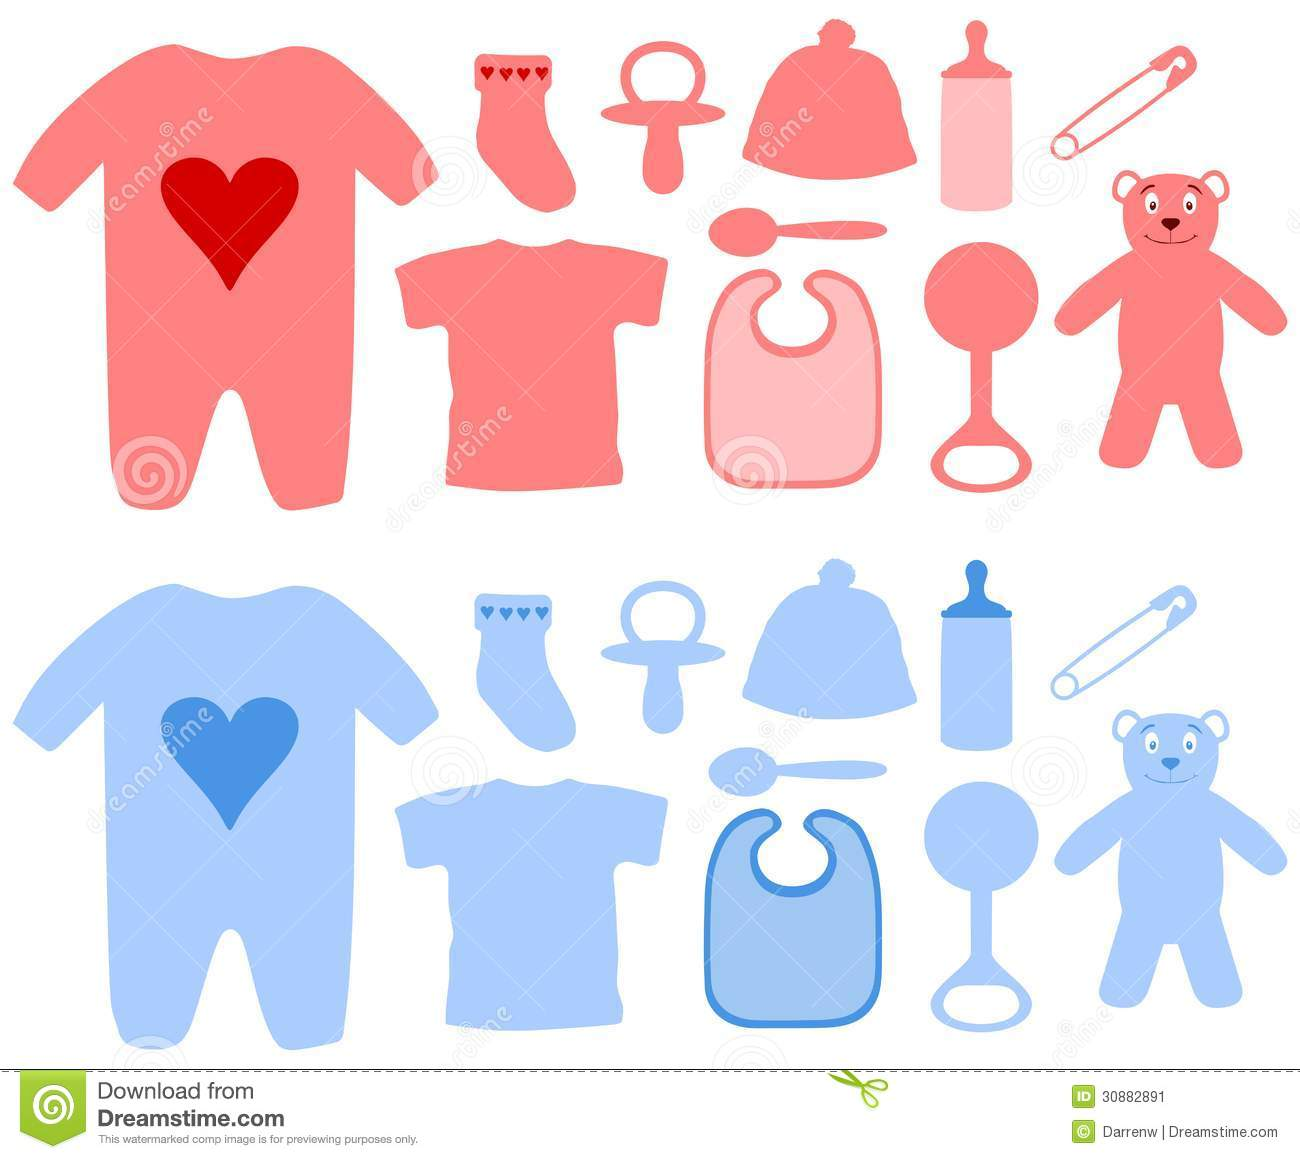 Girls And Boys Baby Items Stock Image - Image: 30882891